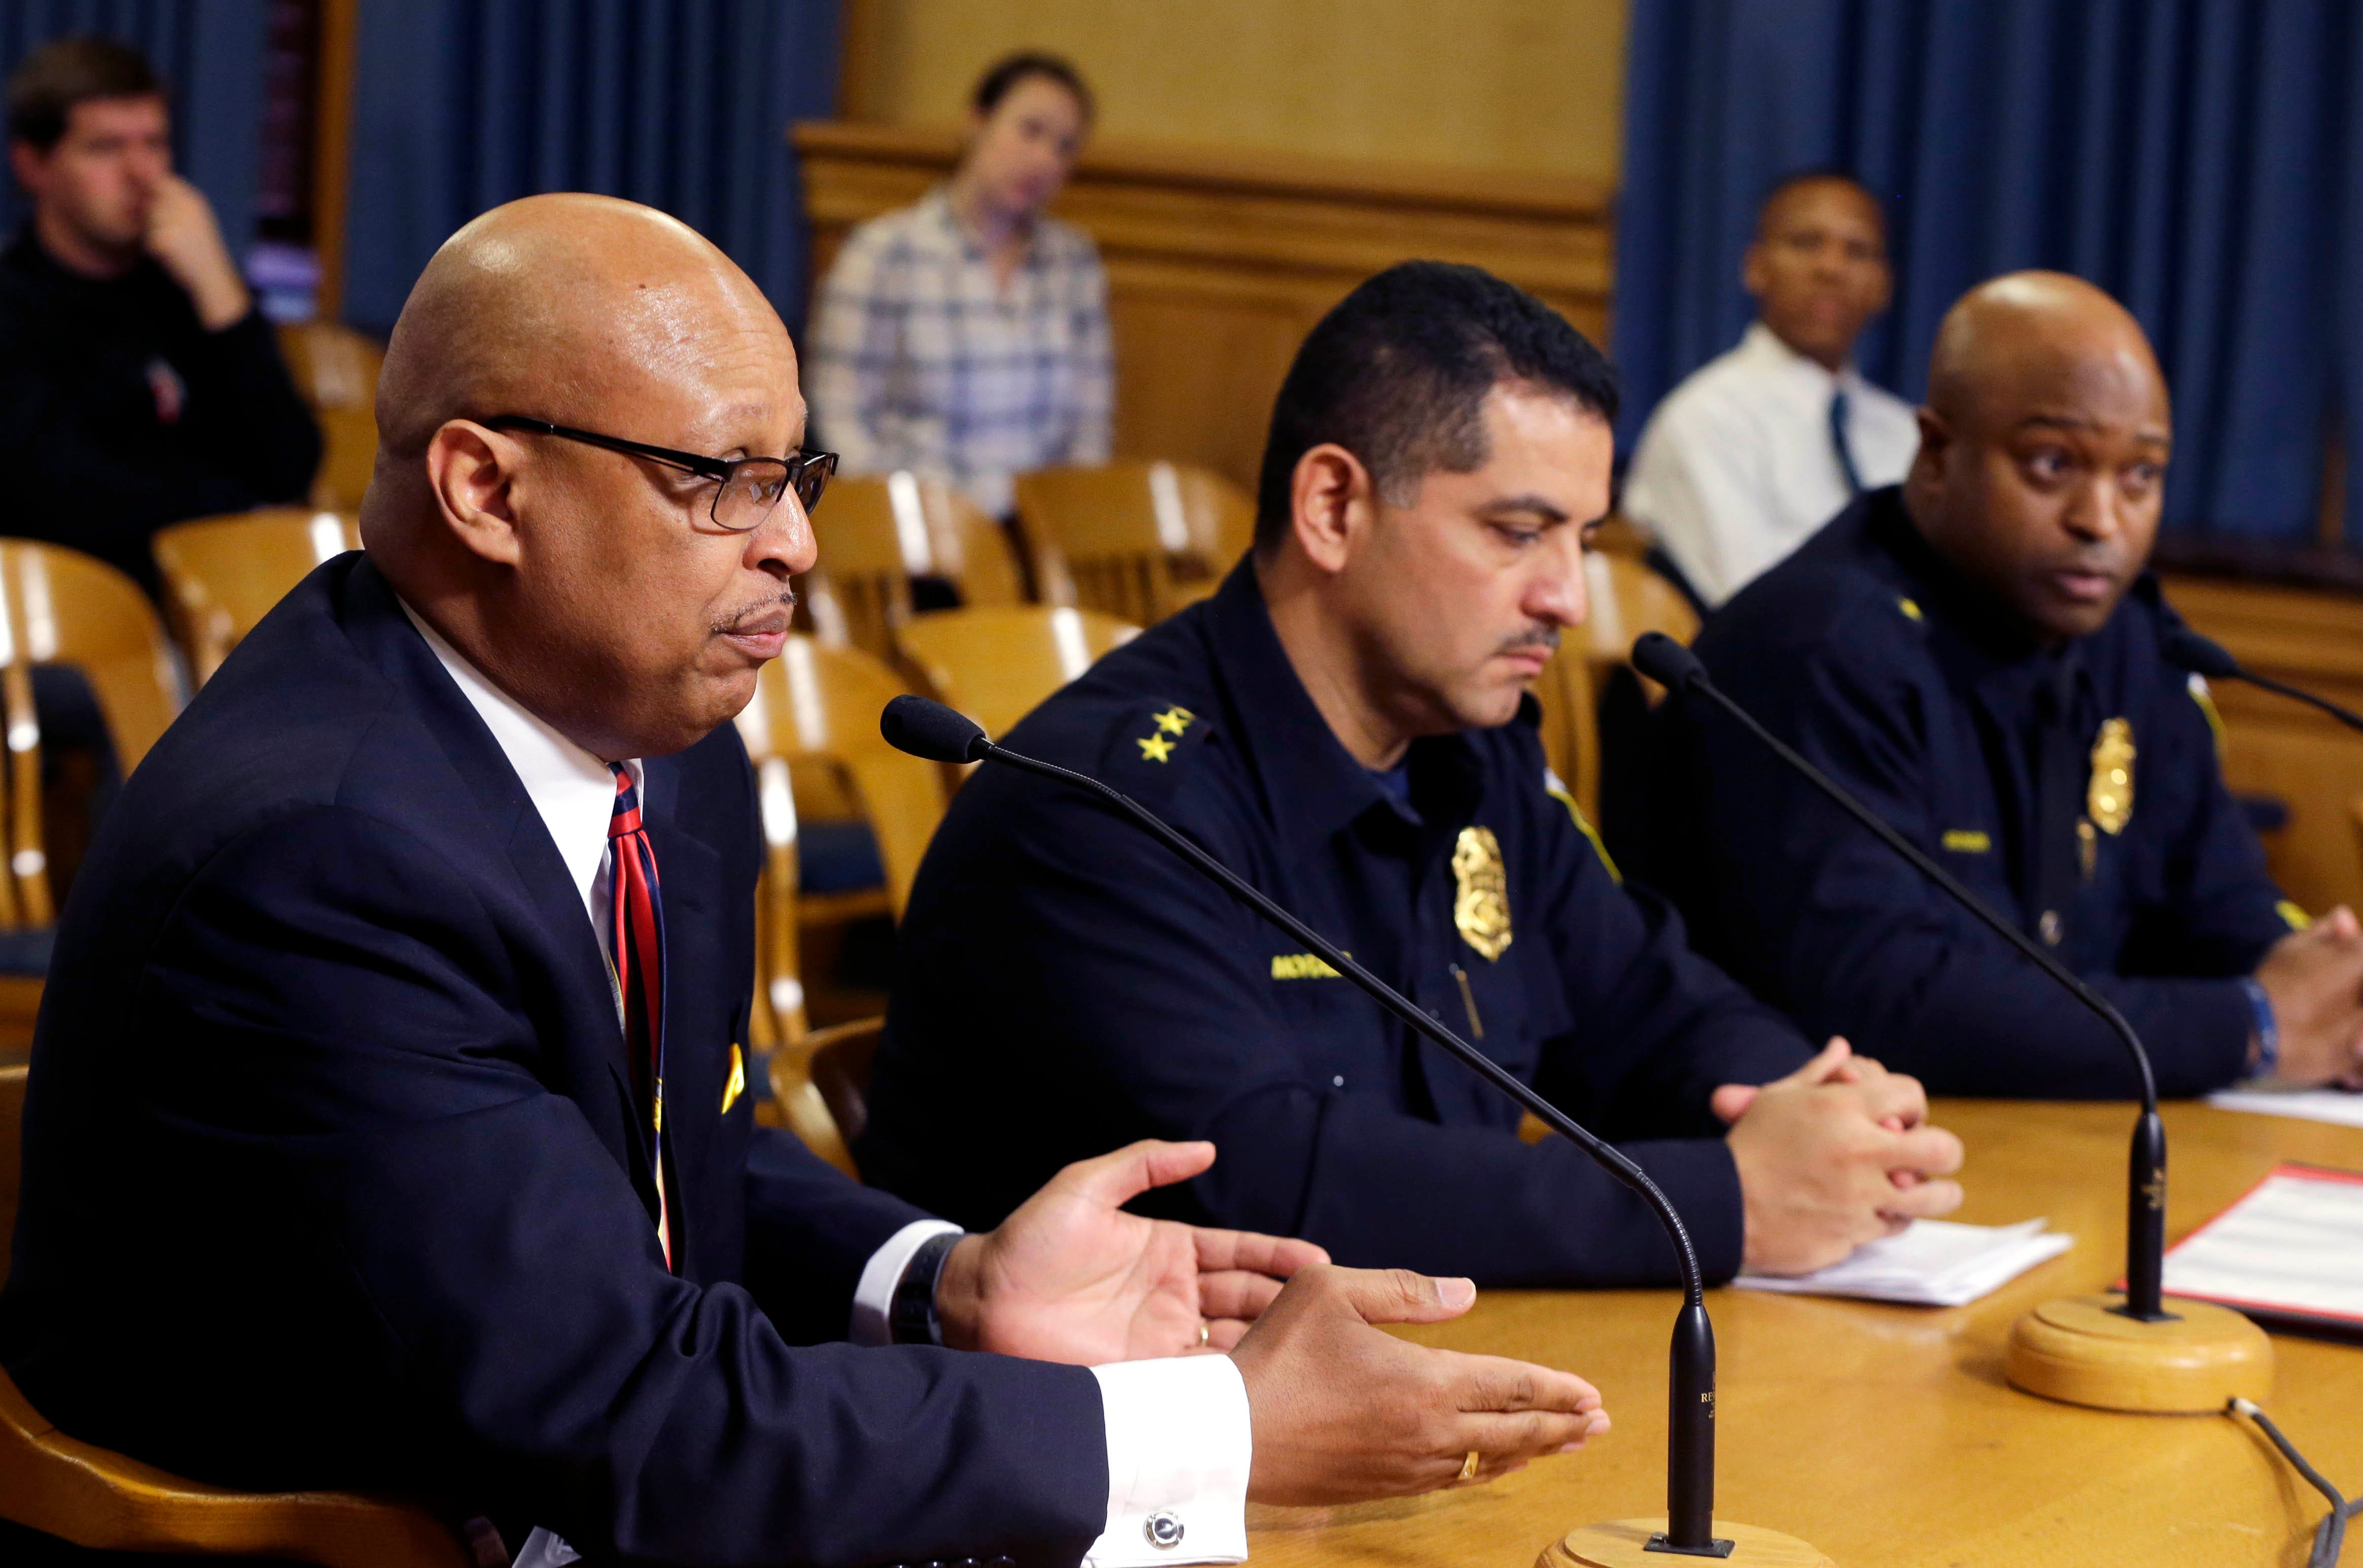 Milwaukee Police Chief Alfonso Morales, center, speaks to a Common Council committee in 2018. Assistant chiefs Raymond Banks, left, and Michael Brunson, right, look on.